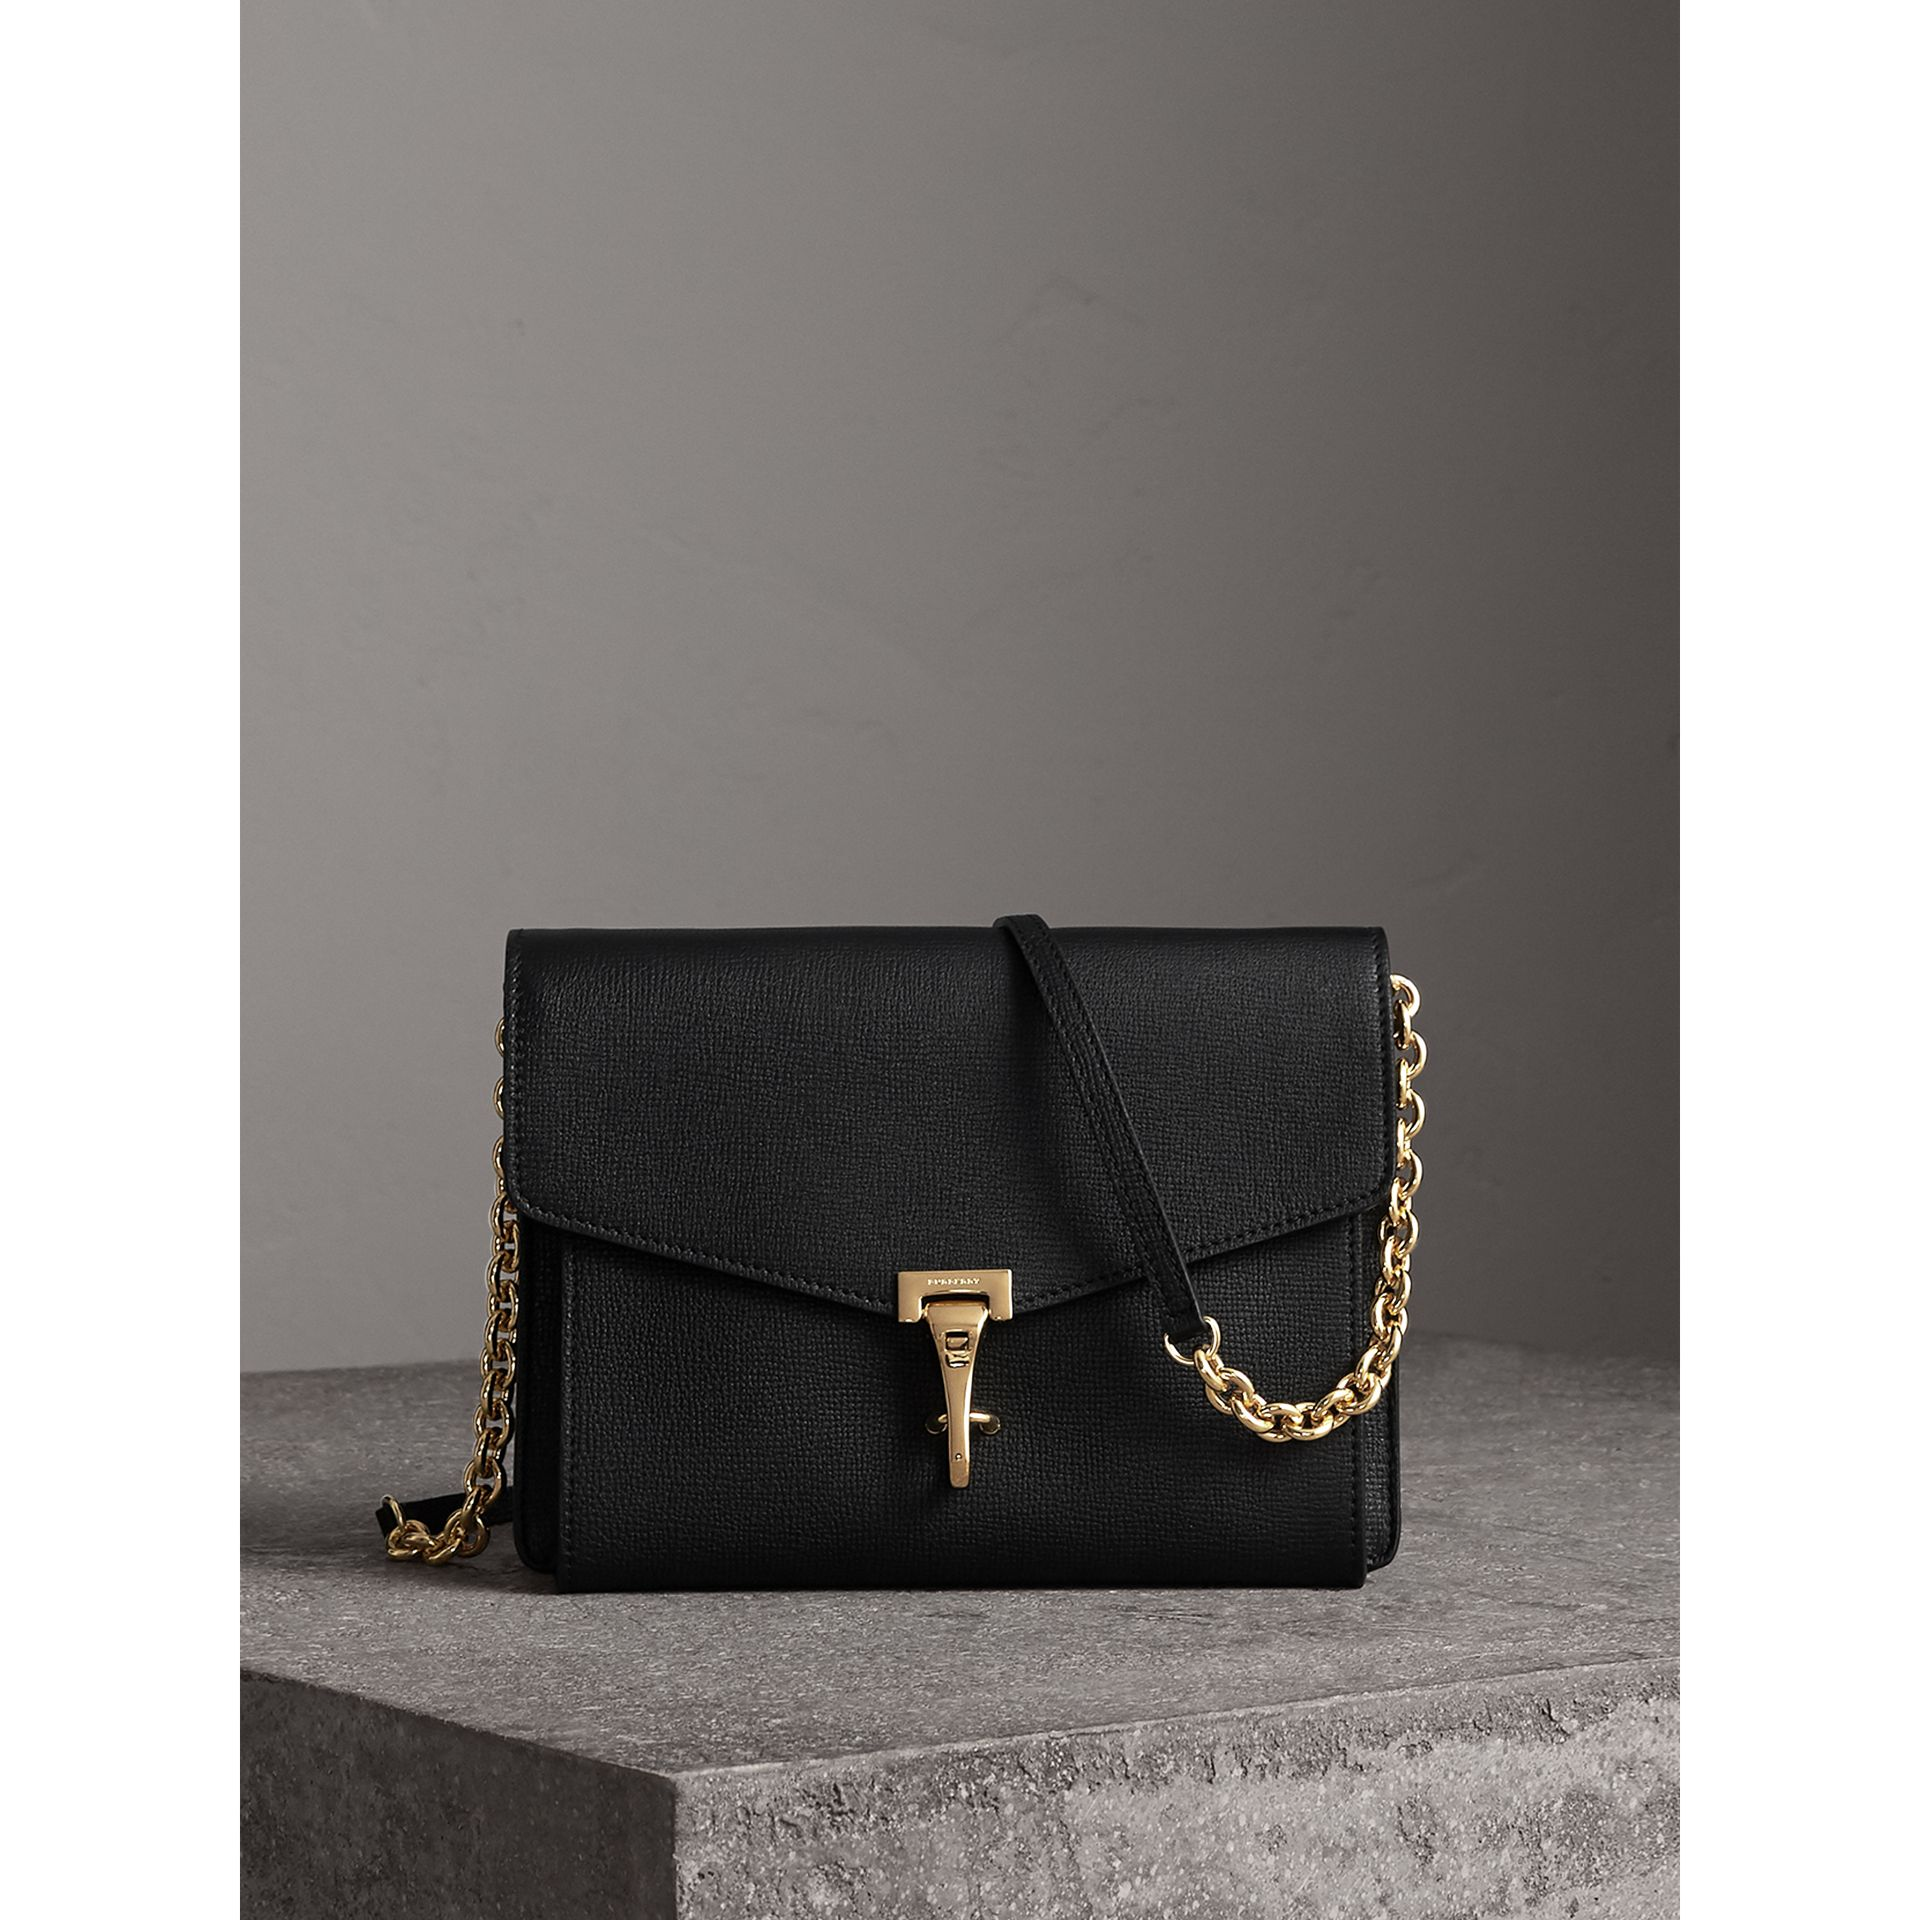 Small Leather Crossbody Bag in Black - Women | Burberry Hong Kong - gallery image 1